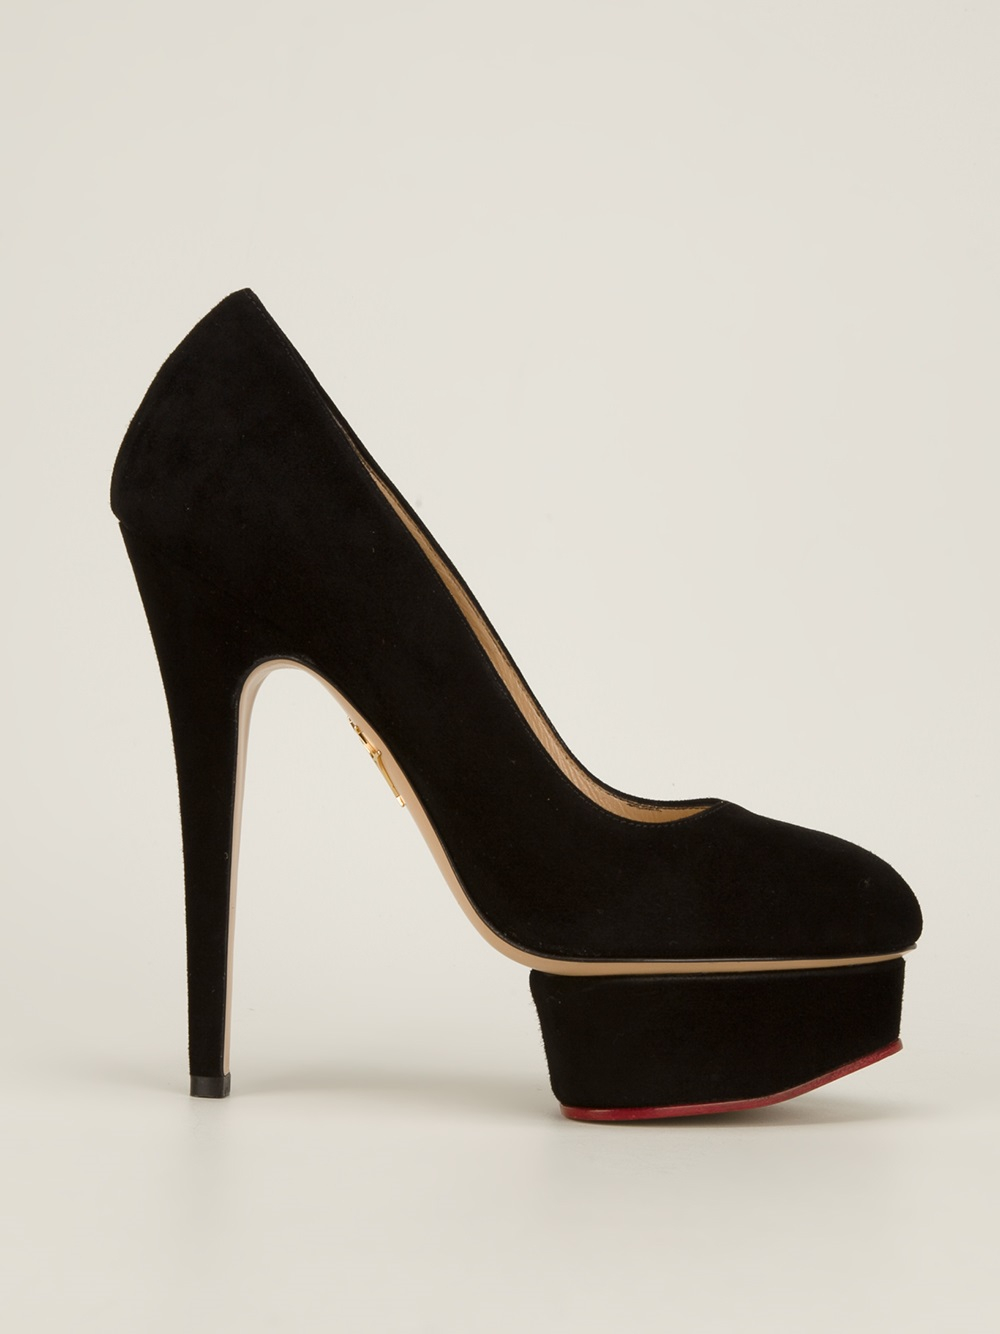 Dolly pumps - Black Charlotte Olympia xMbFH